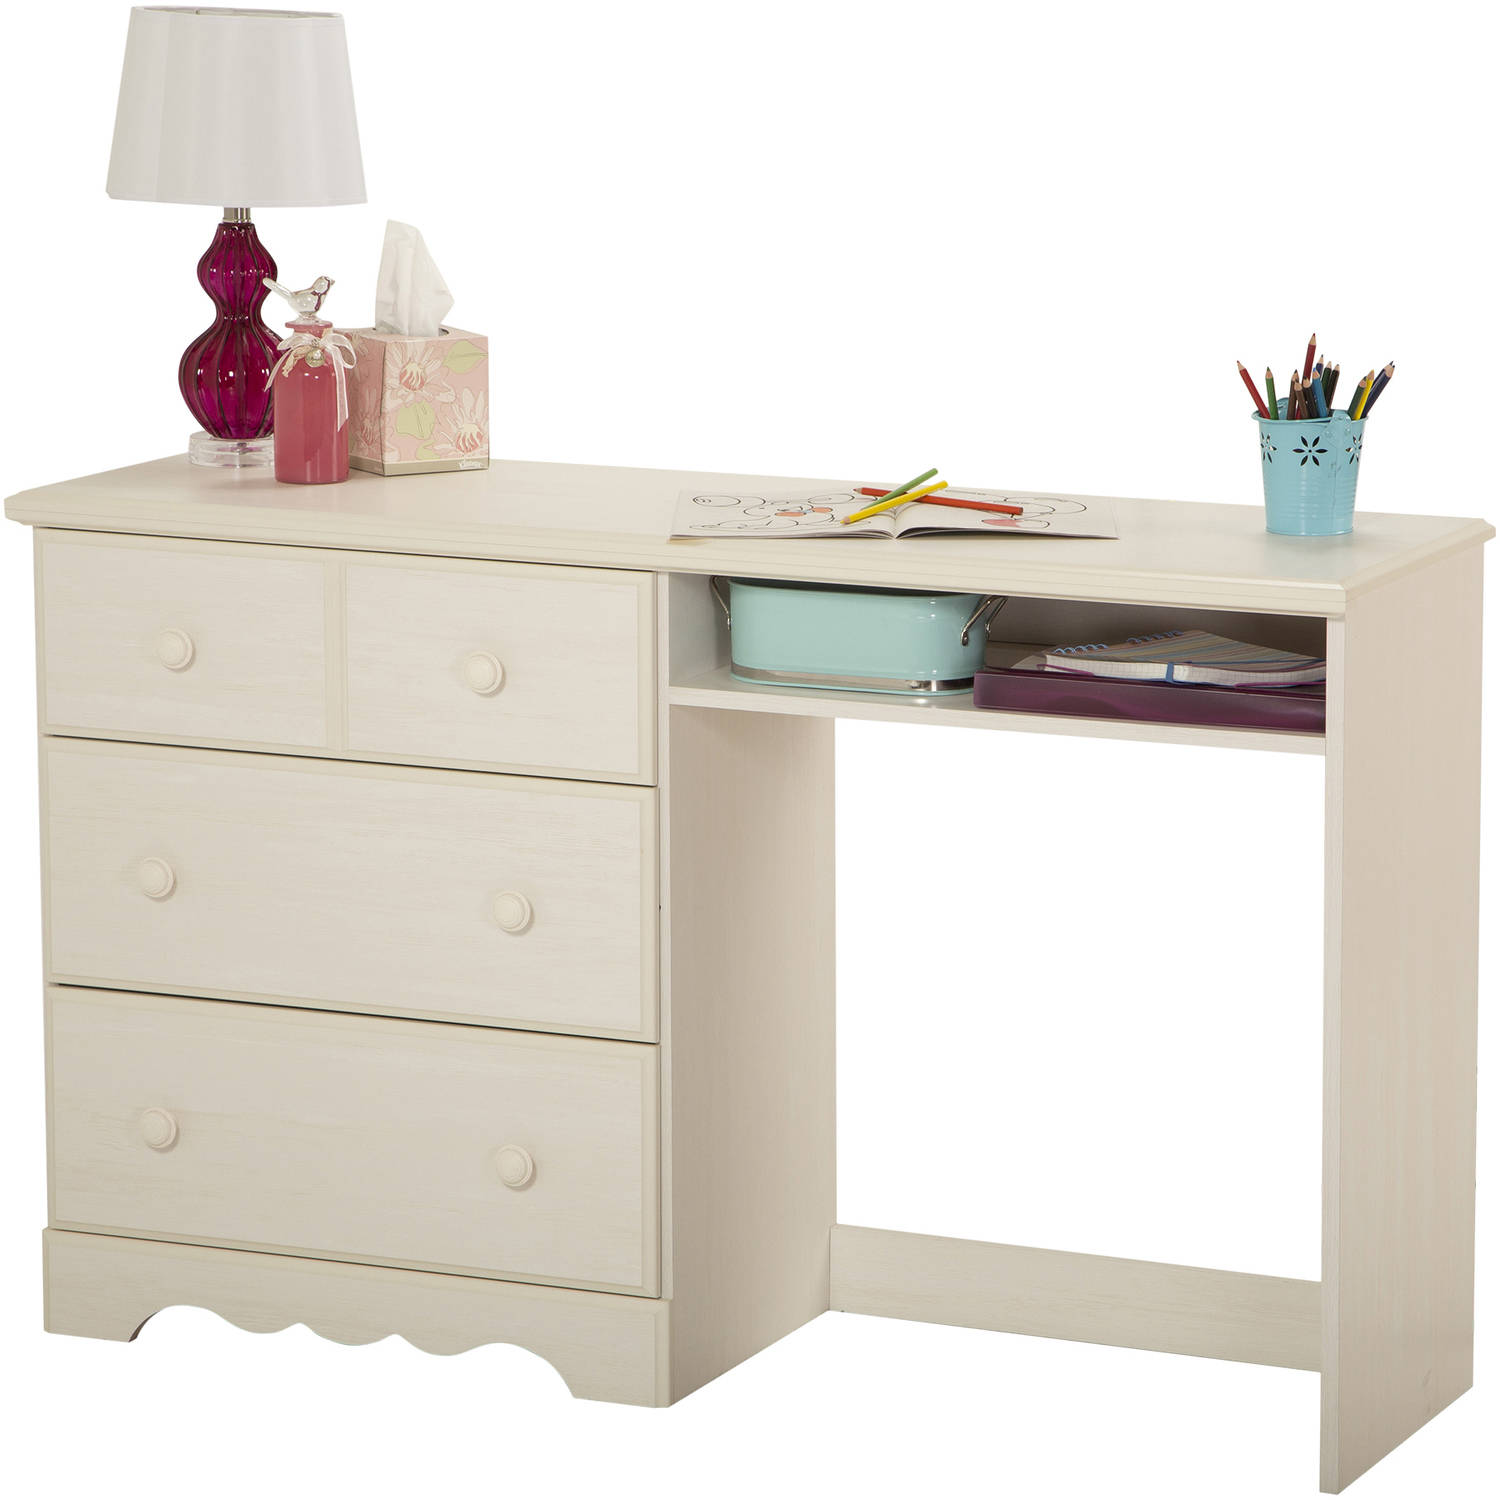 South Shore Summer Breeze Kids Desk With 3 Drawers, White. Bulova Table Clock. Node Desk. Correct Desk Posture. Dining Table Ikea. Science Desk Toys. Used Executive Desks. Rustic Kitchen Table. Lap Desk Kids